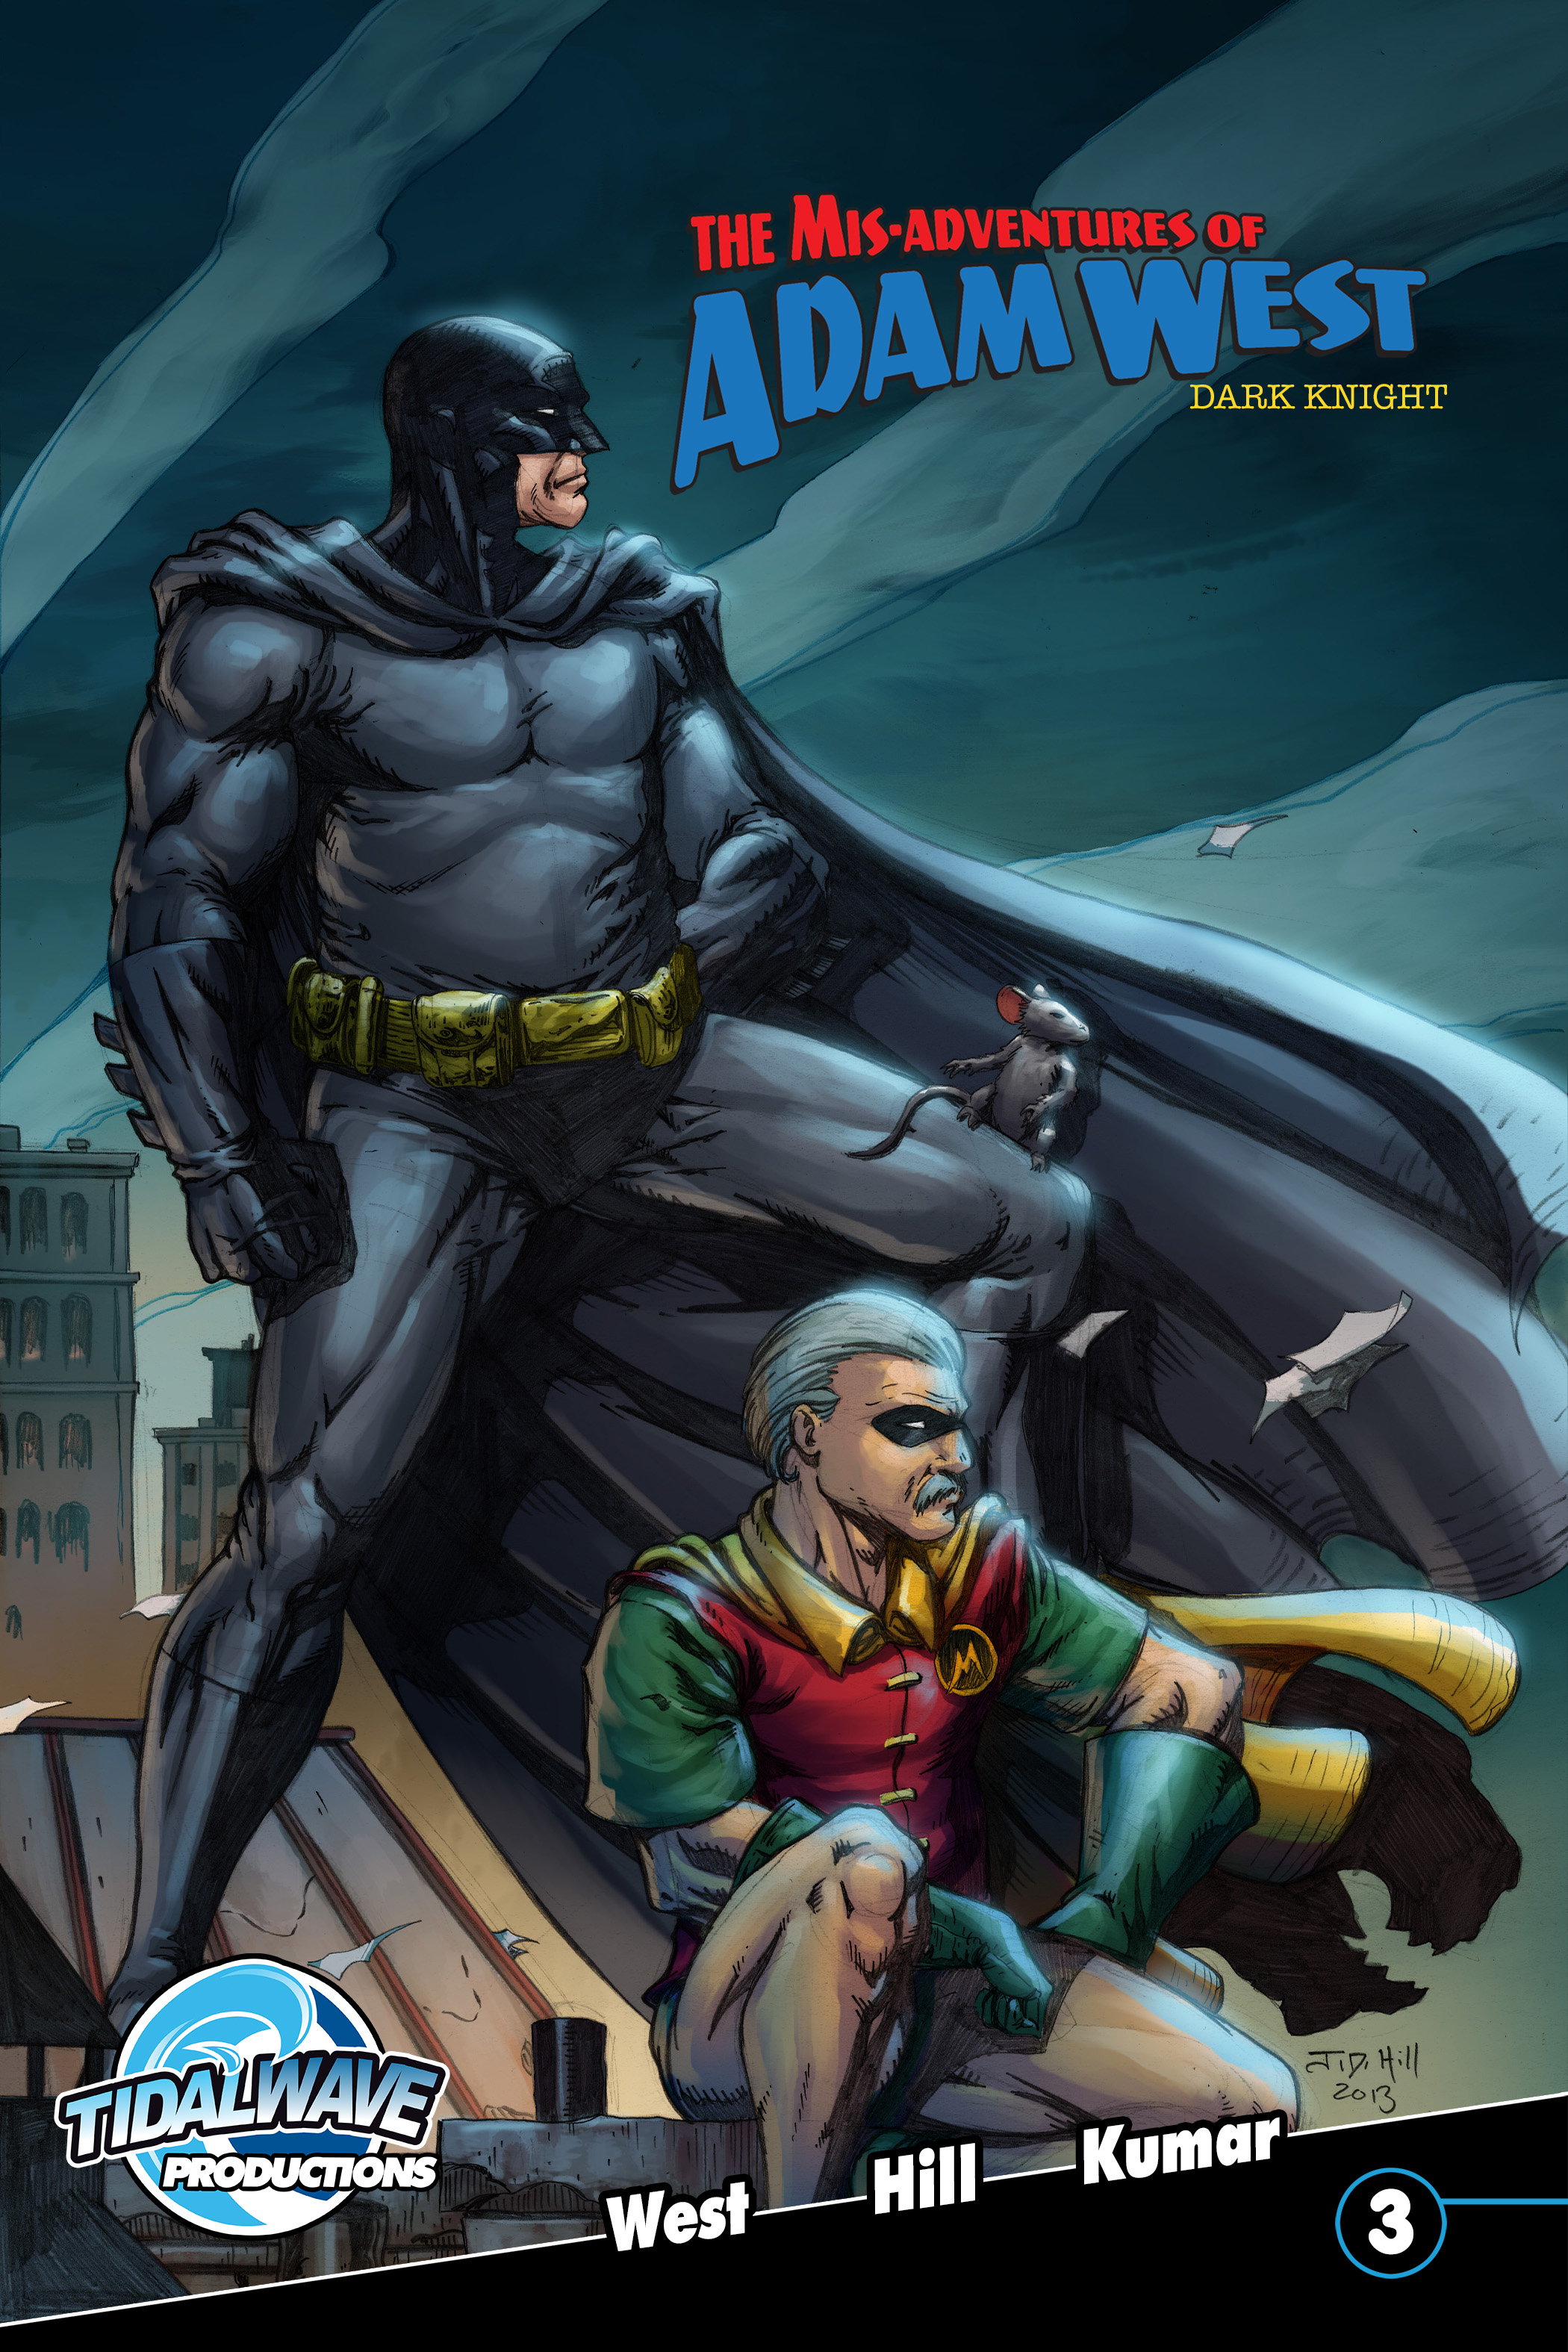 Misadventures of Adam West: Dark Night #3